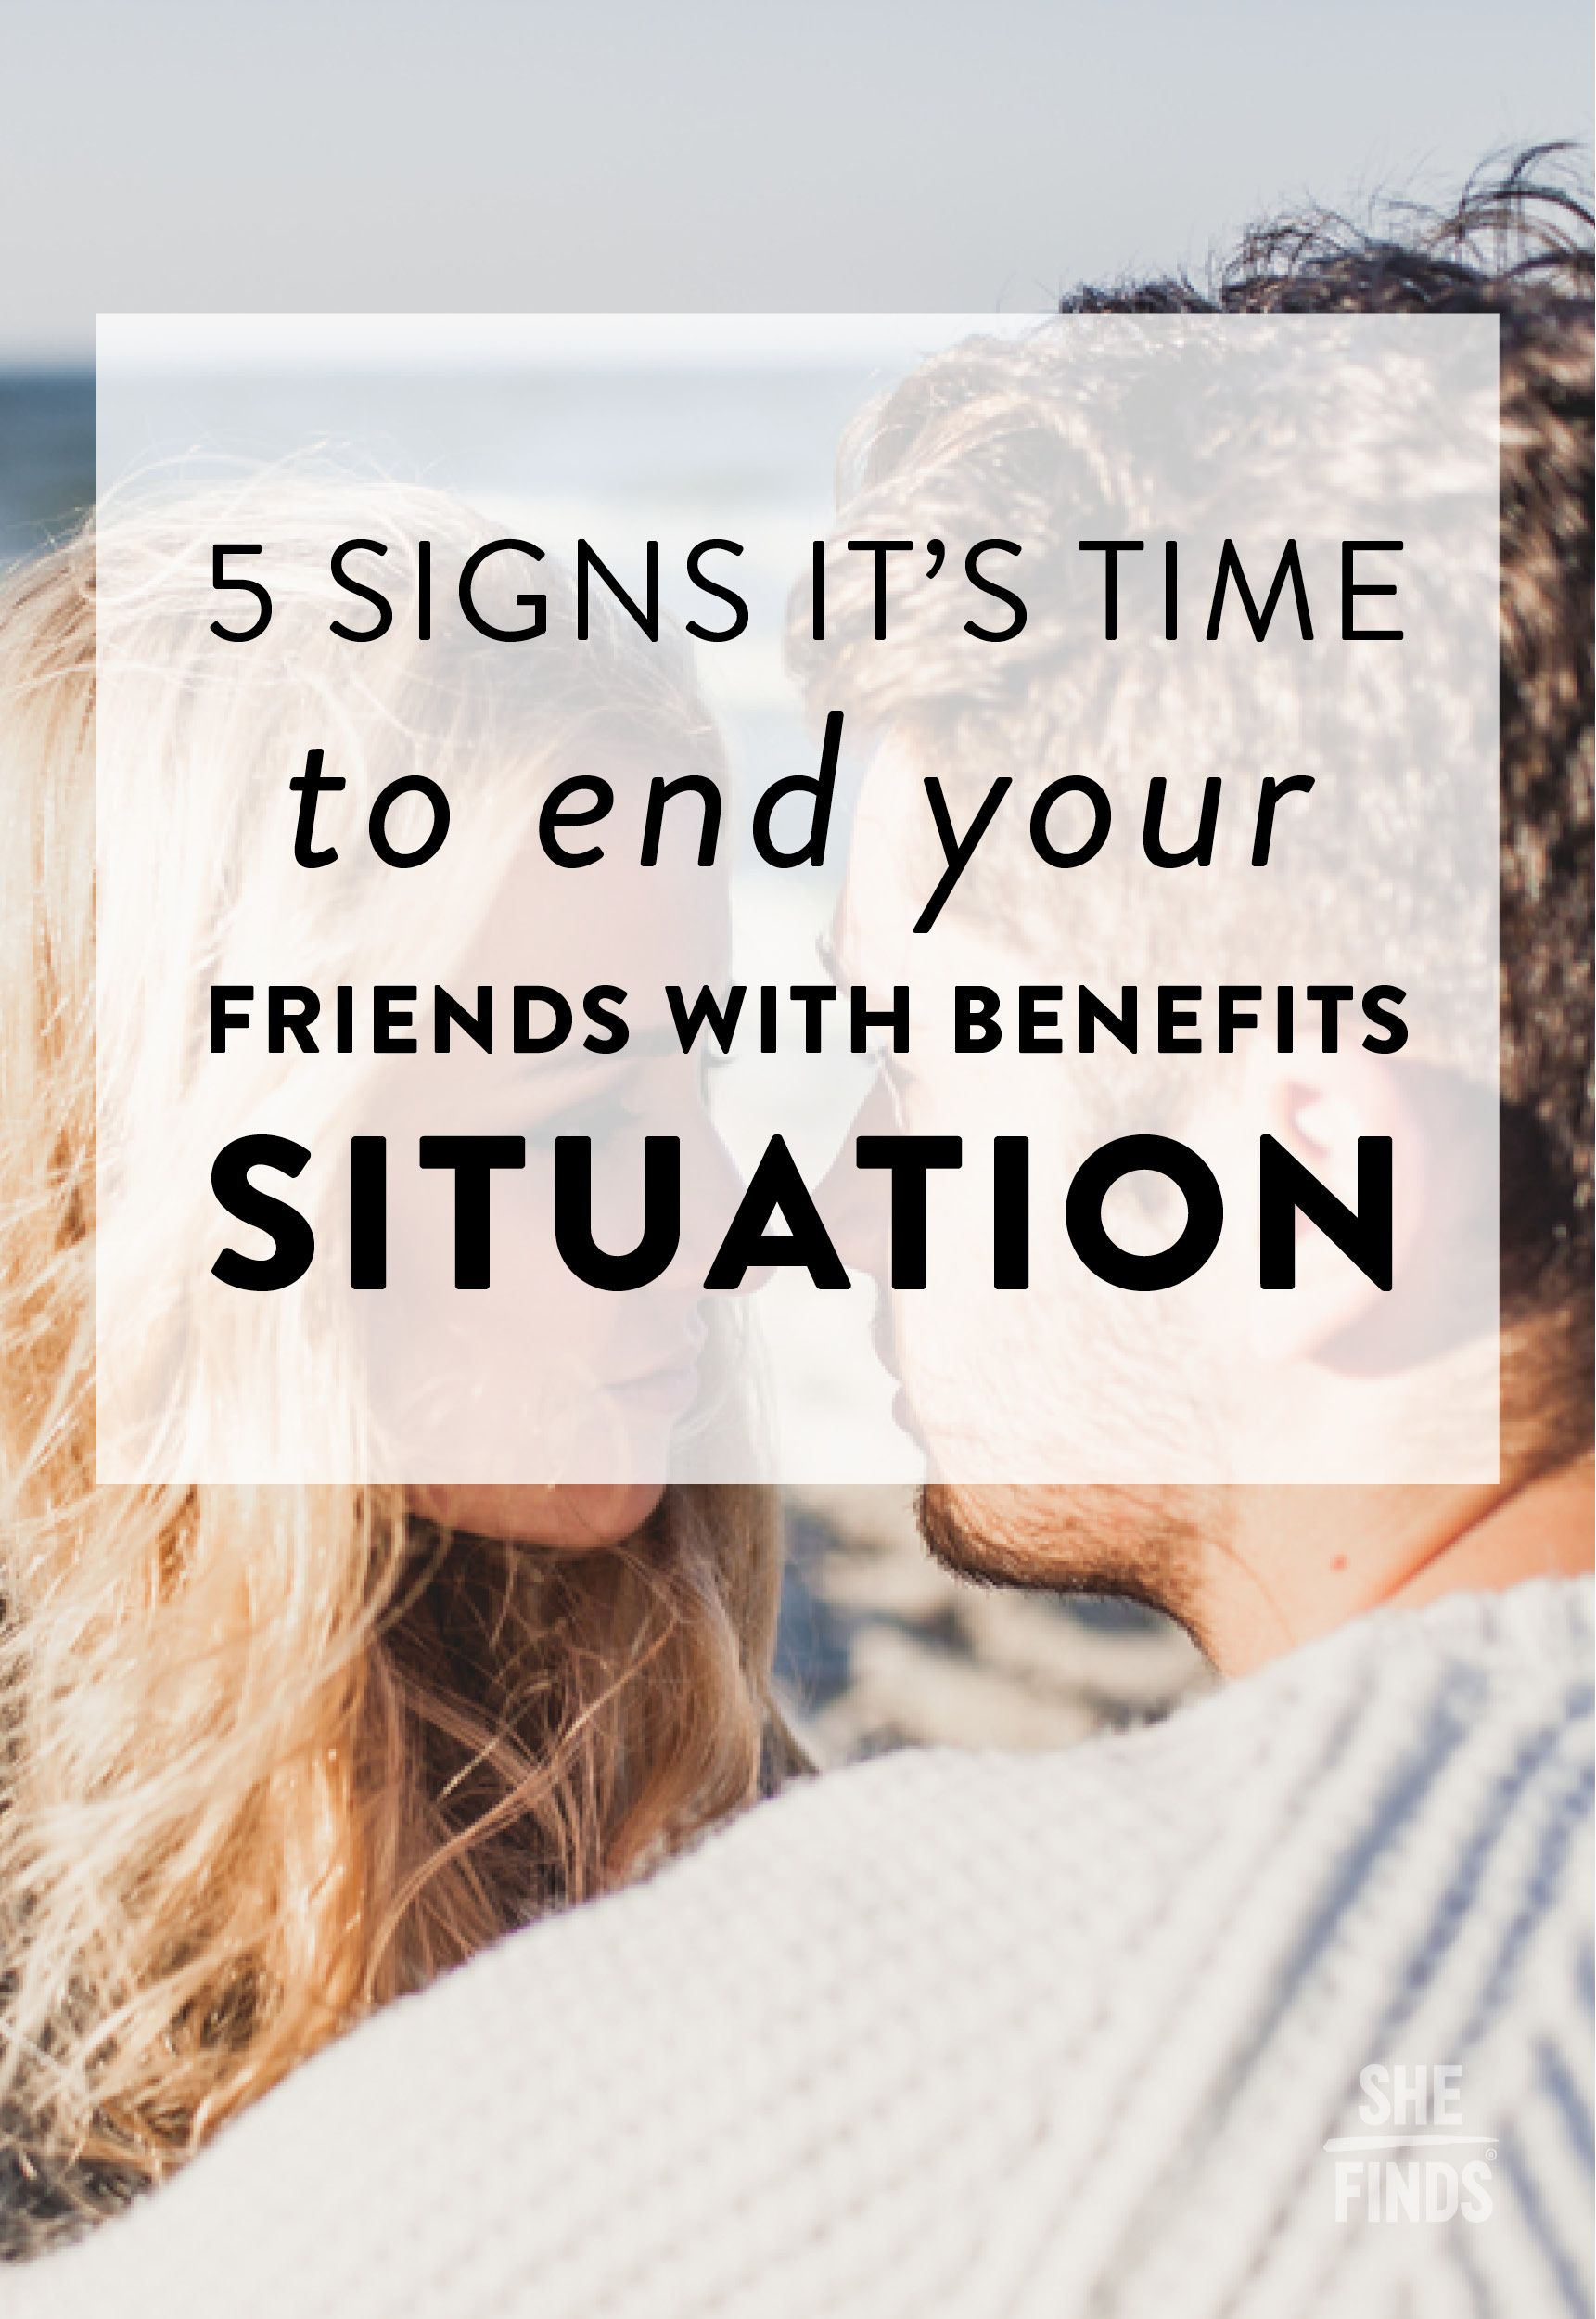 5 Signs It's Time To End Your 'Friends With Benefits